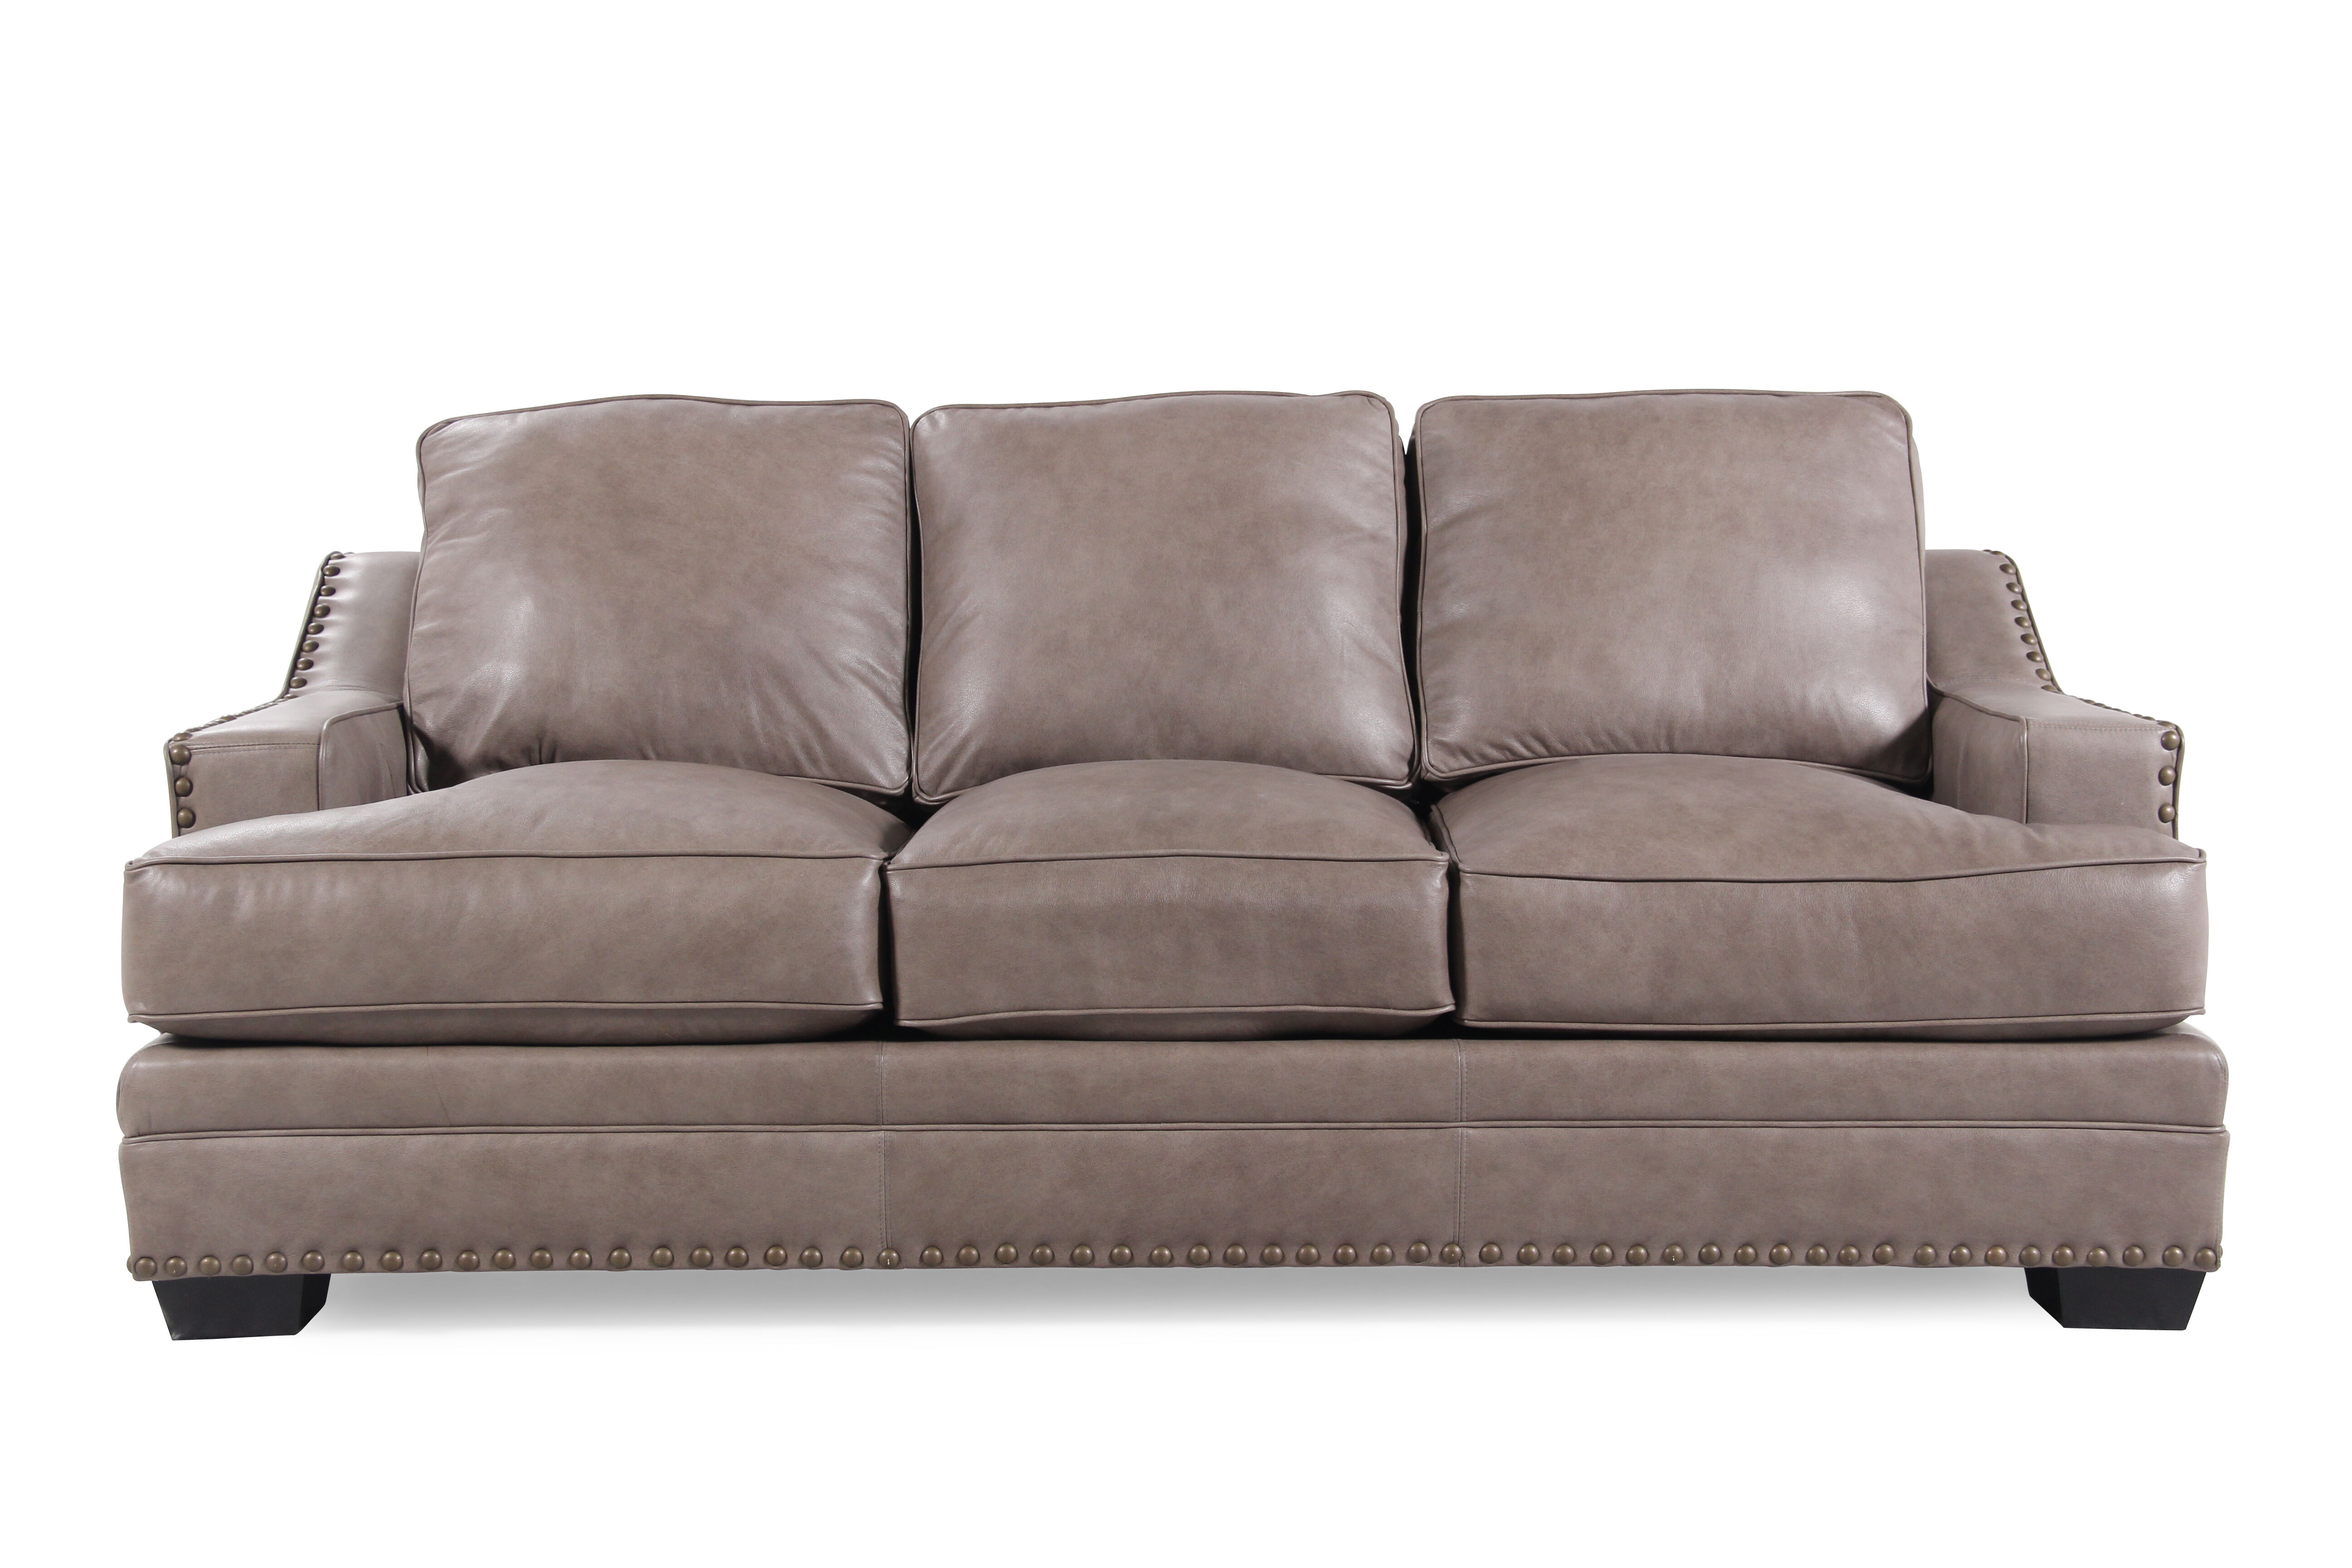 broyhill leather sofa sets comfortable mexican comfy route estes park mathis brothers furniture